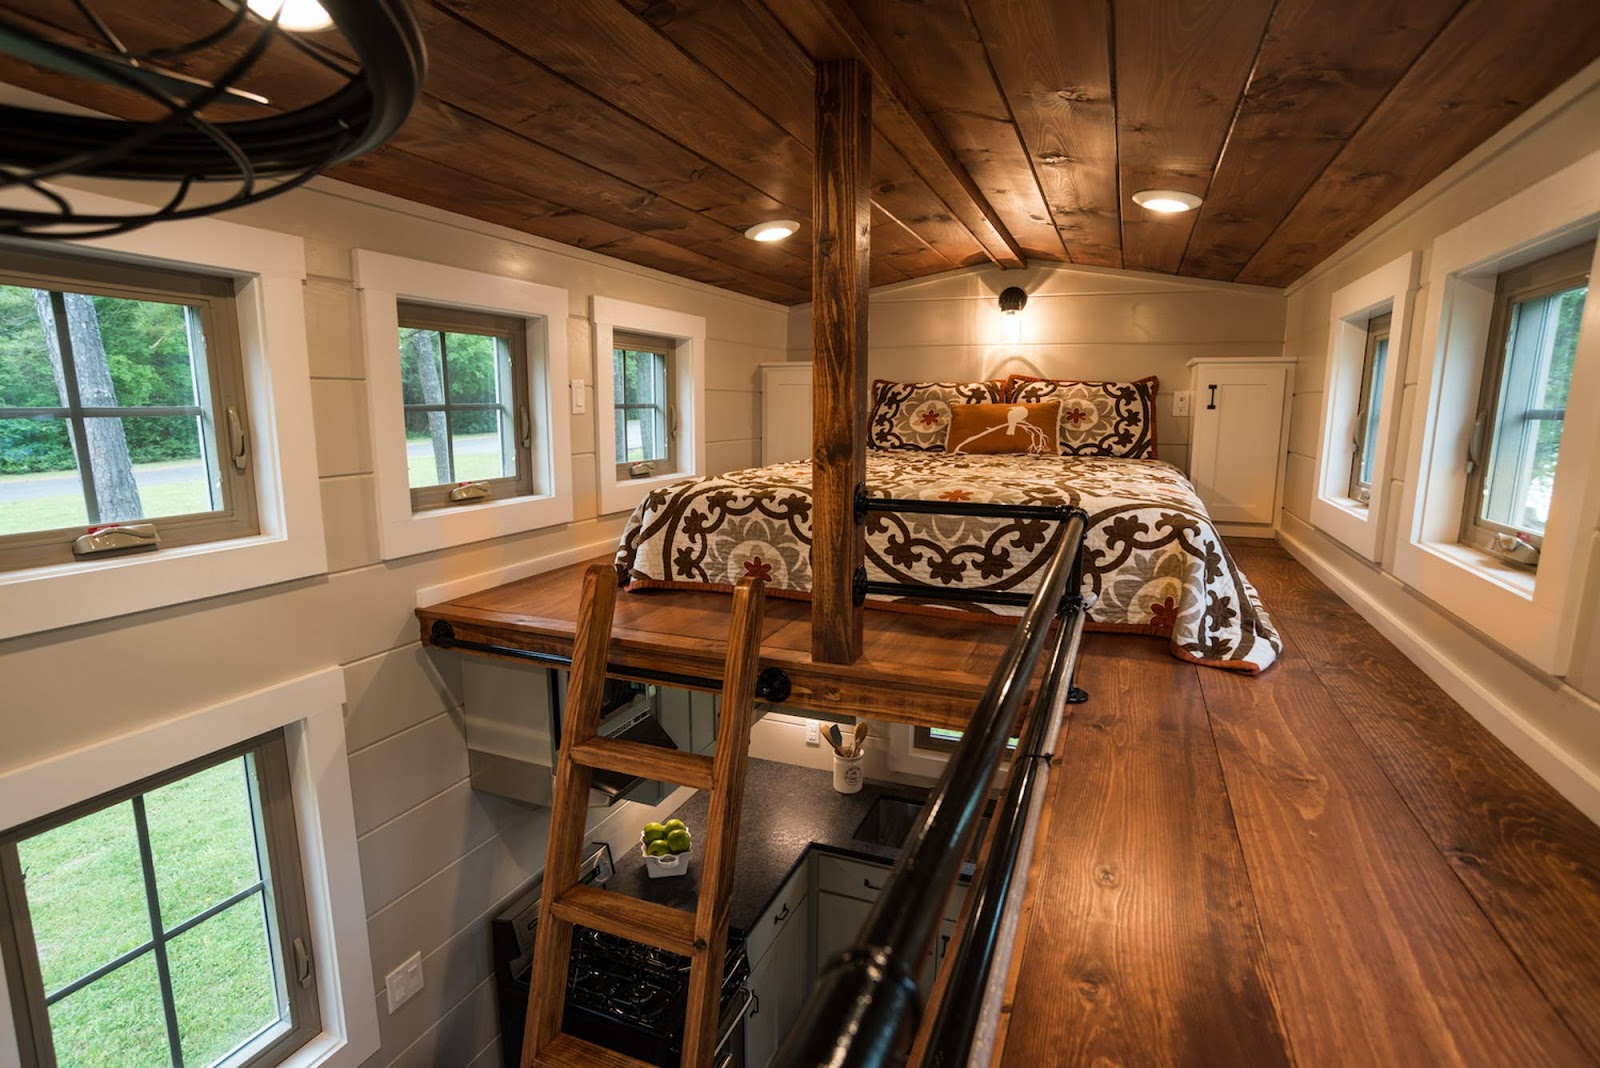 TINY HOUSE TOWN: The Retreat From Timbercraft Tiny Homes